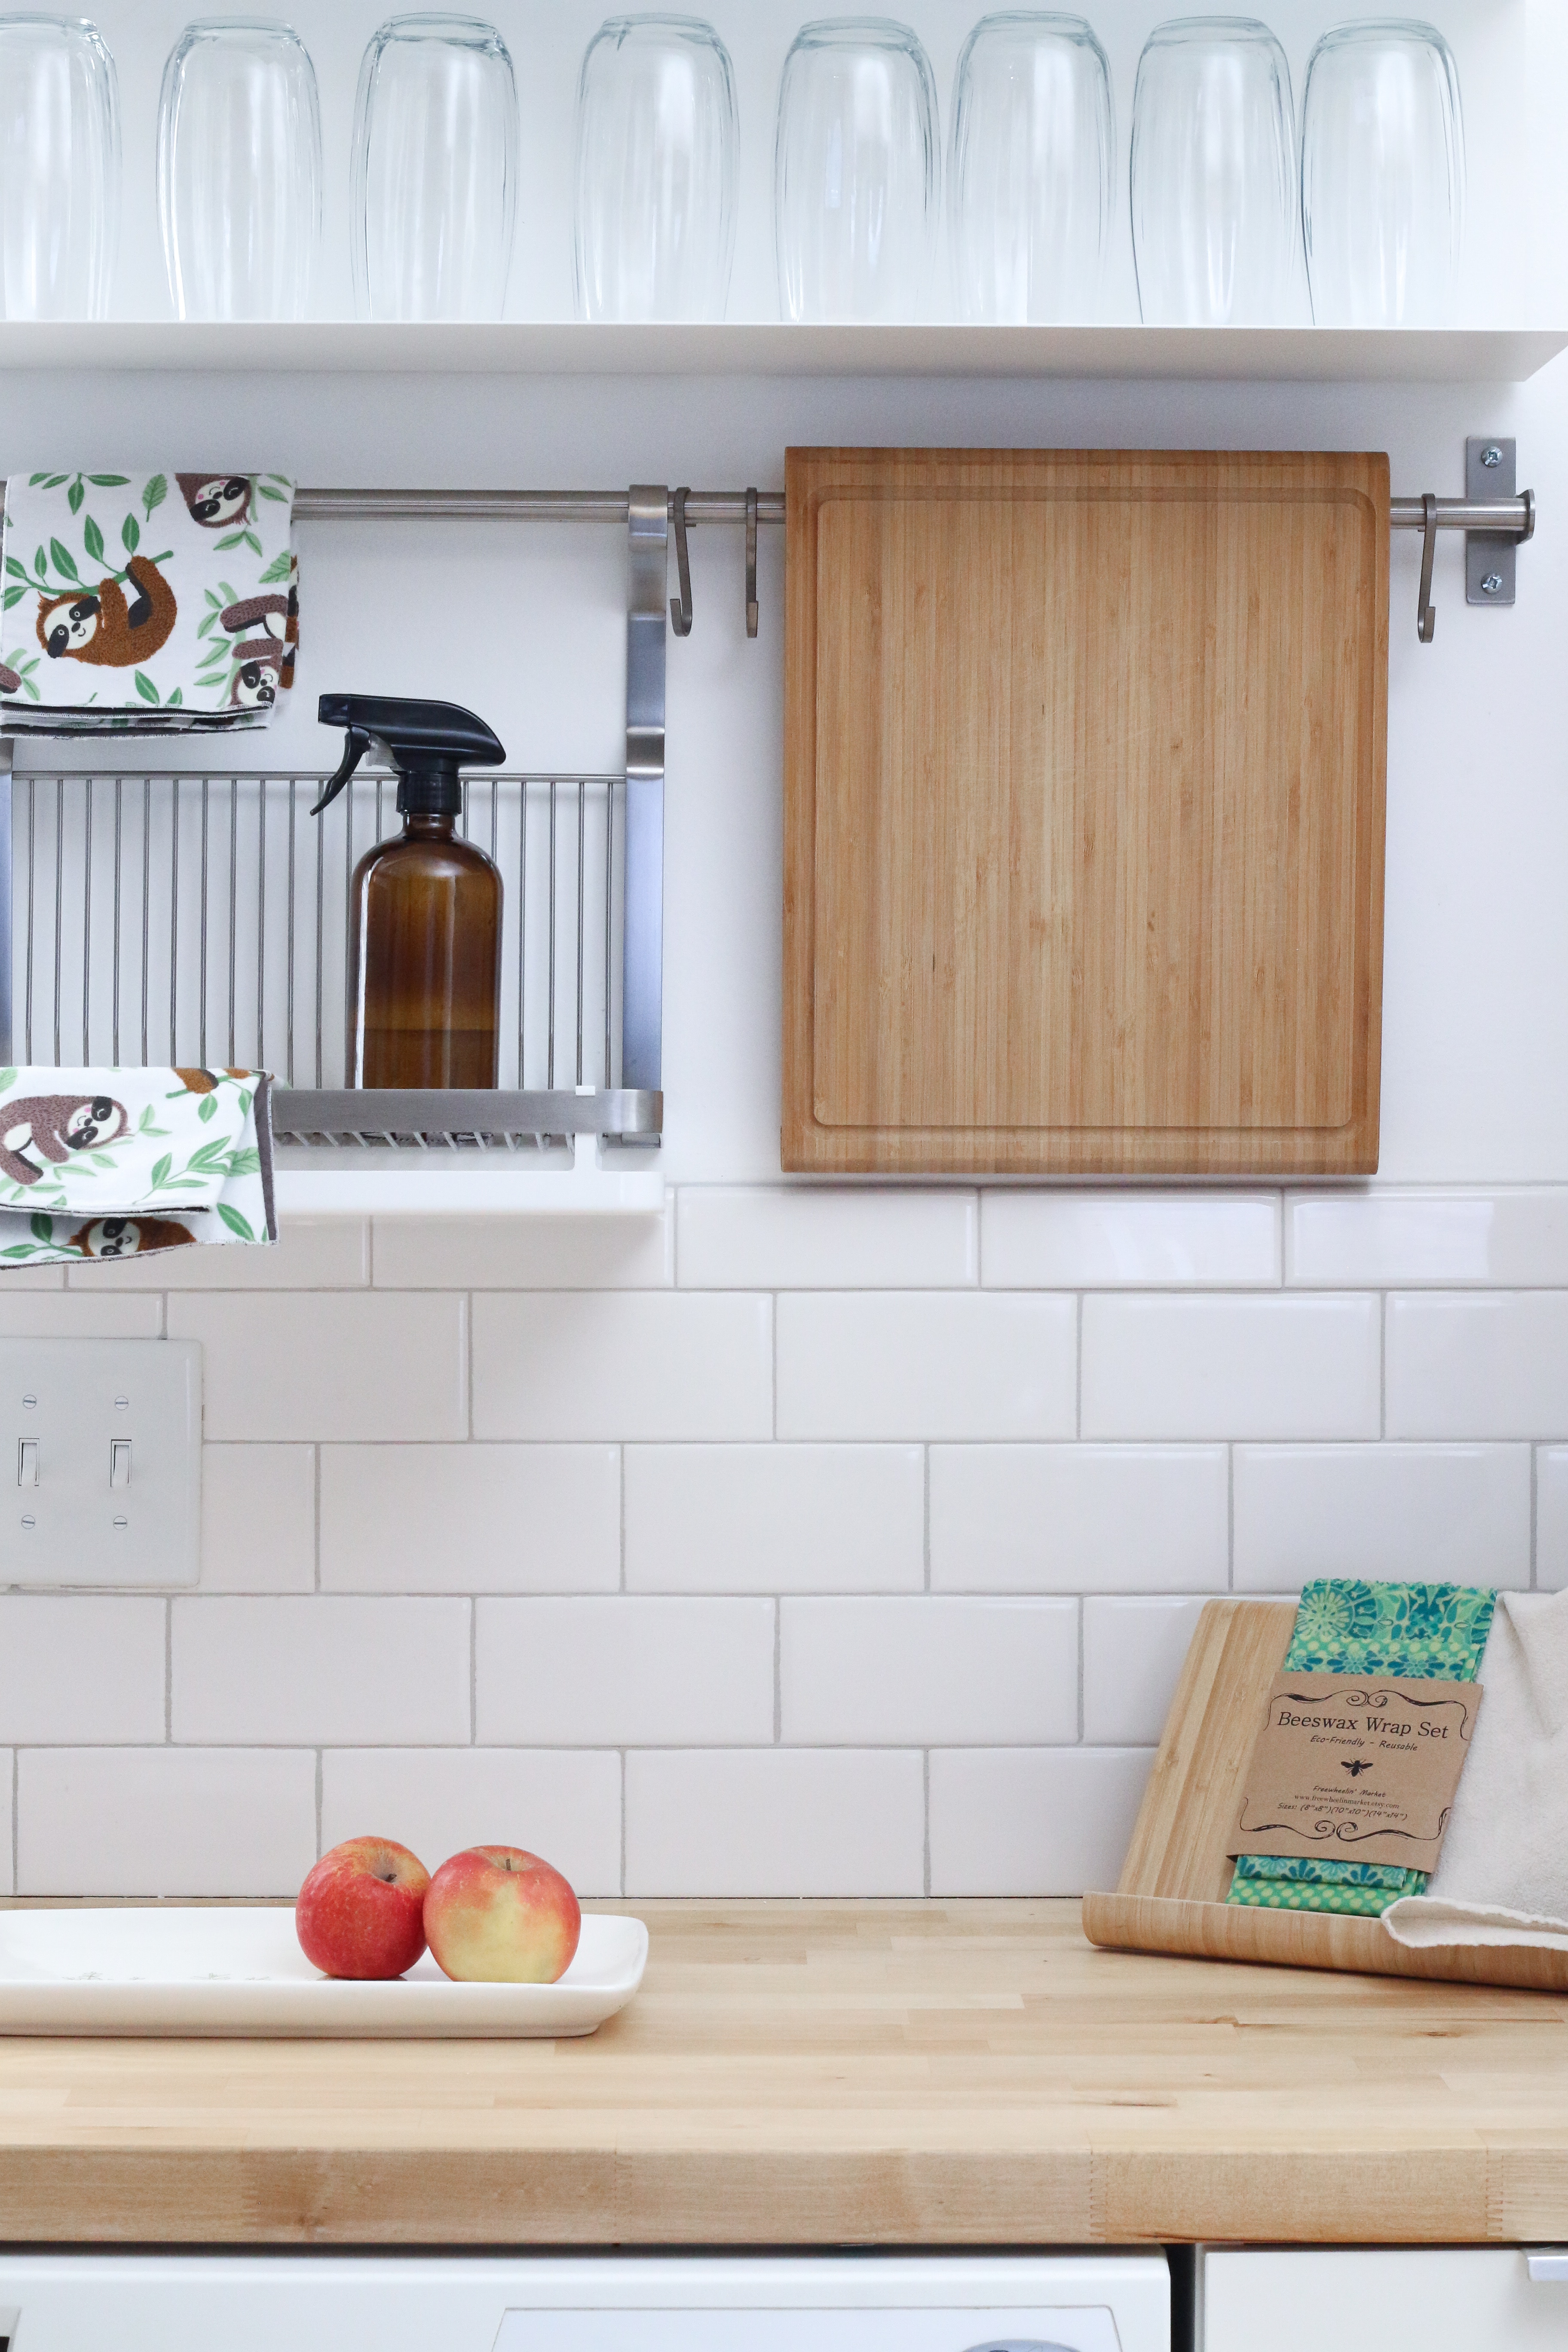 How Can You Create A Zero-Waste Kitchen?